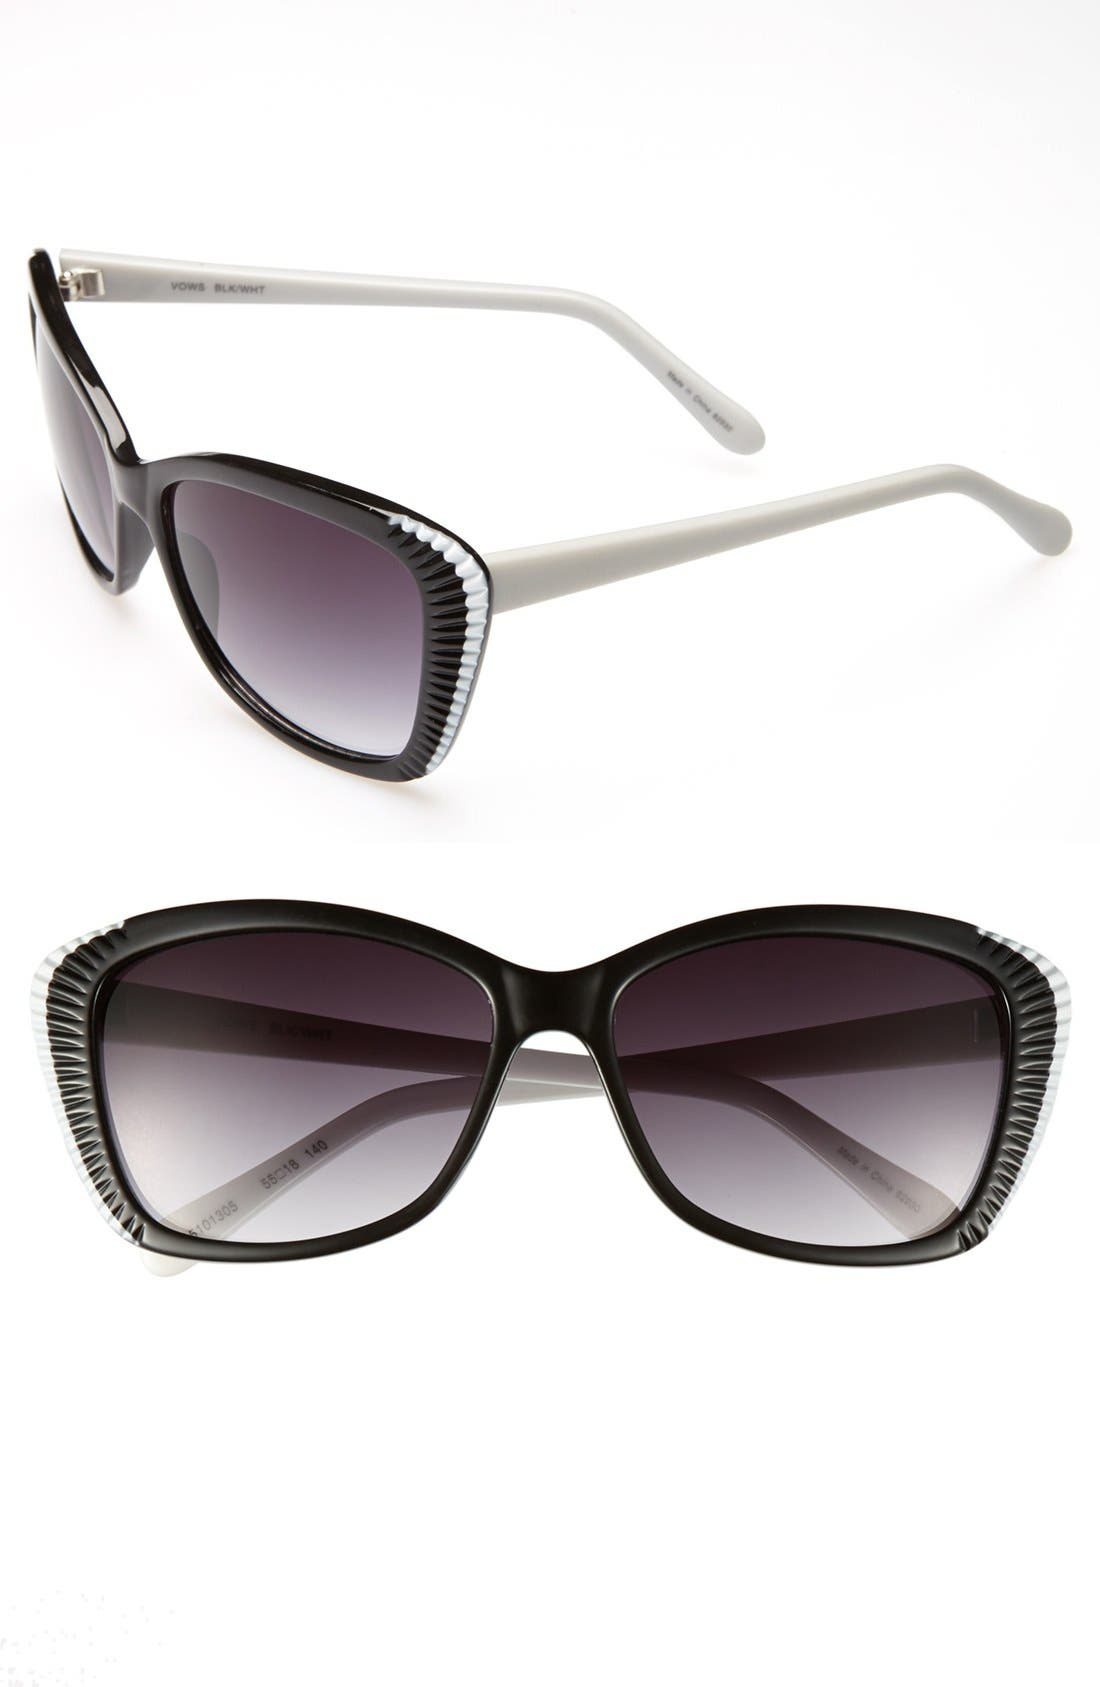 Main Image - Outlook Eyewear 'Vows' 55mm Sunglasses